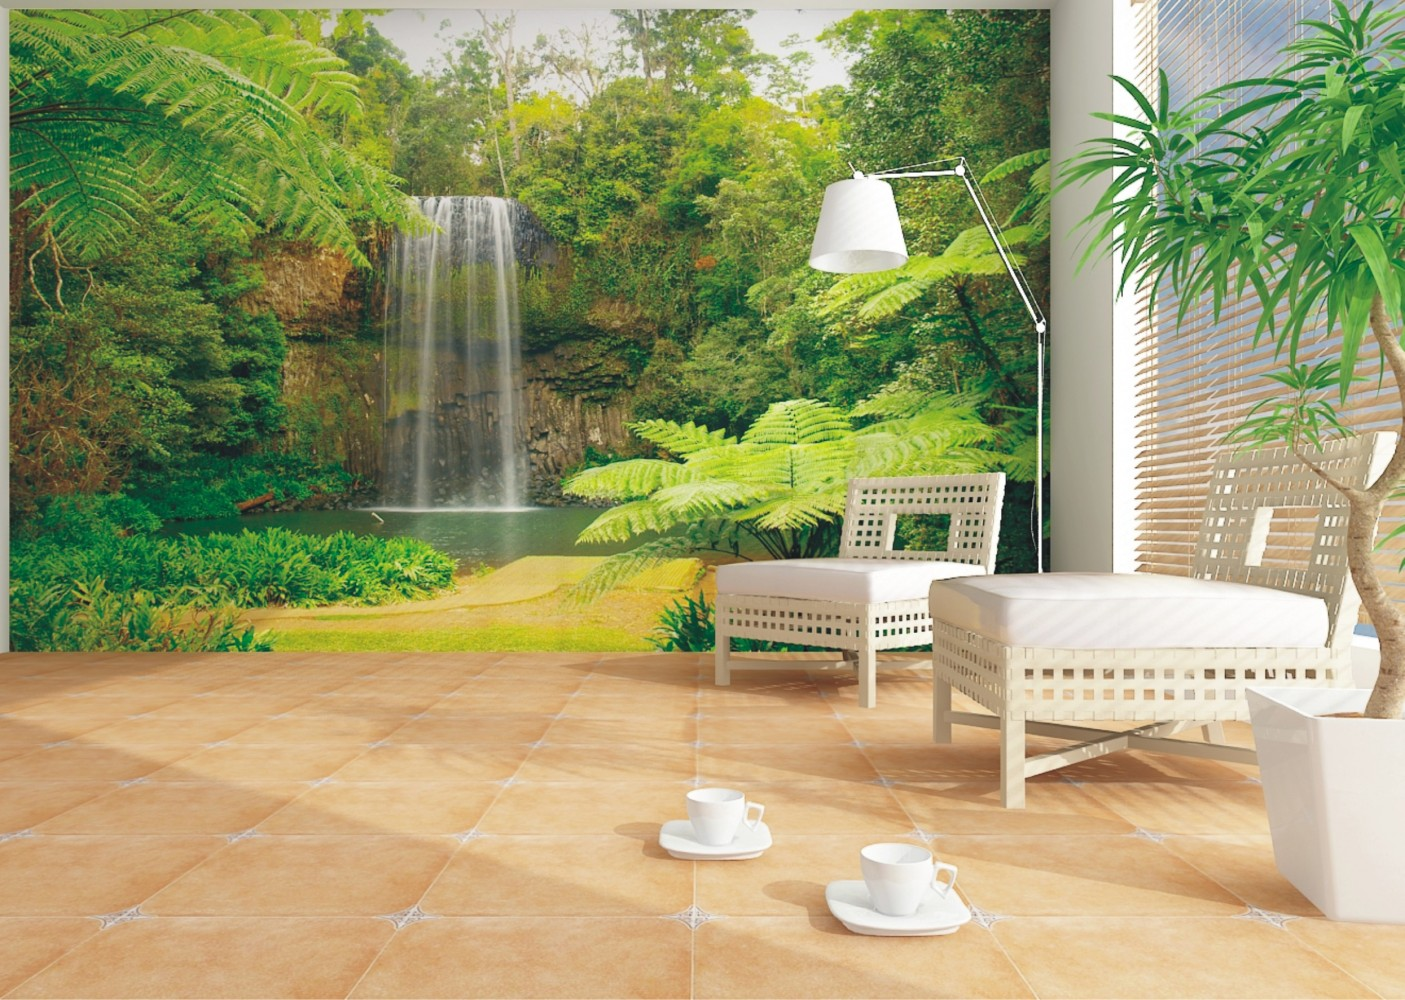 Wall mural wallpaper nature jungle downfall plant photo for Designer mural wallpaper